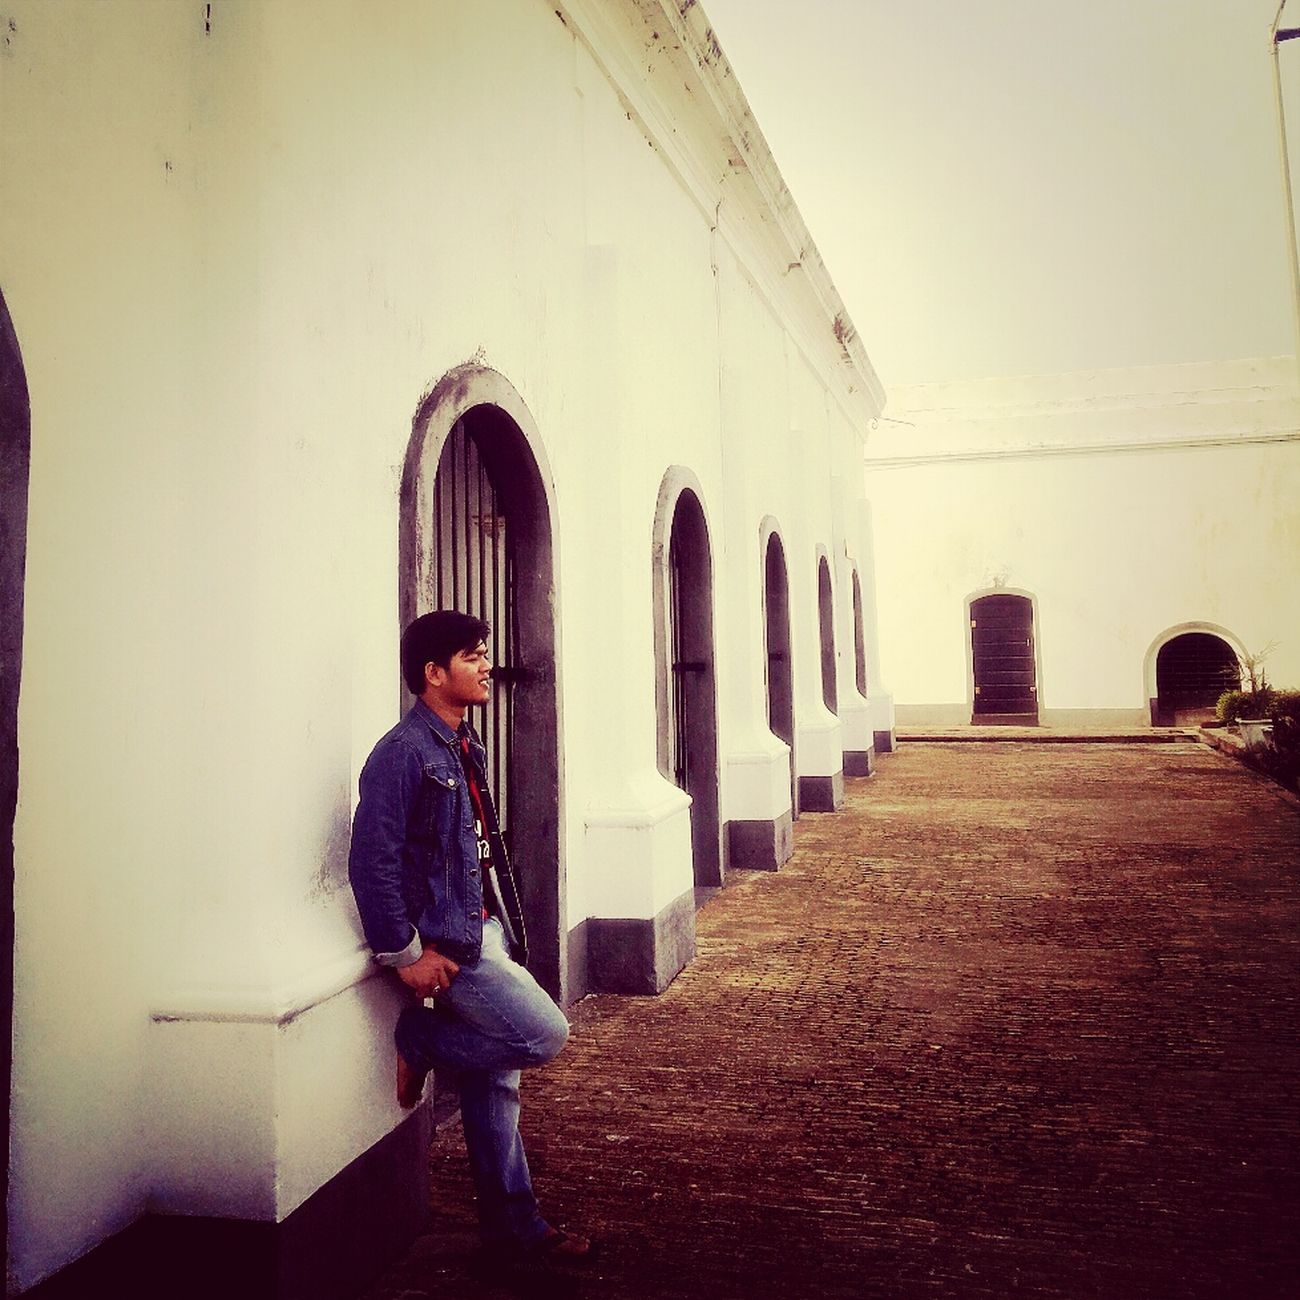 Benteng marlborough.. Explorebengkulu